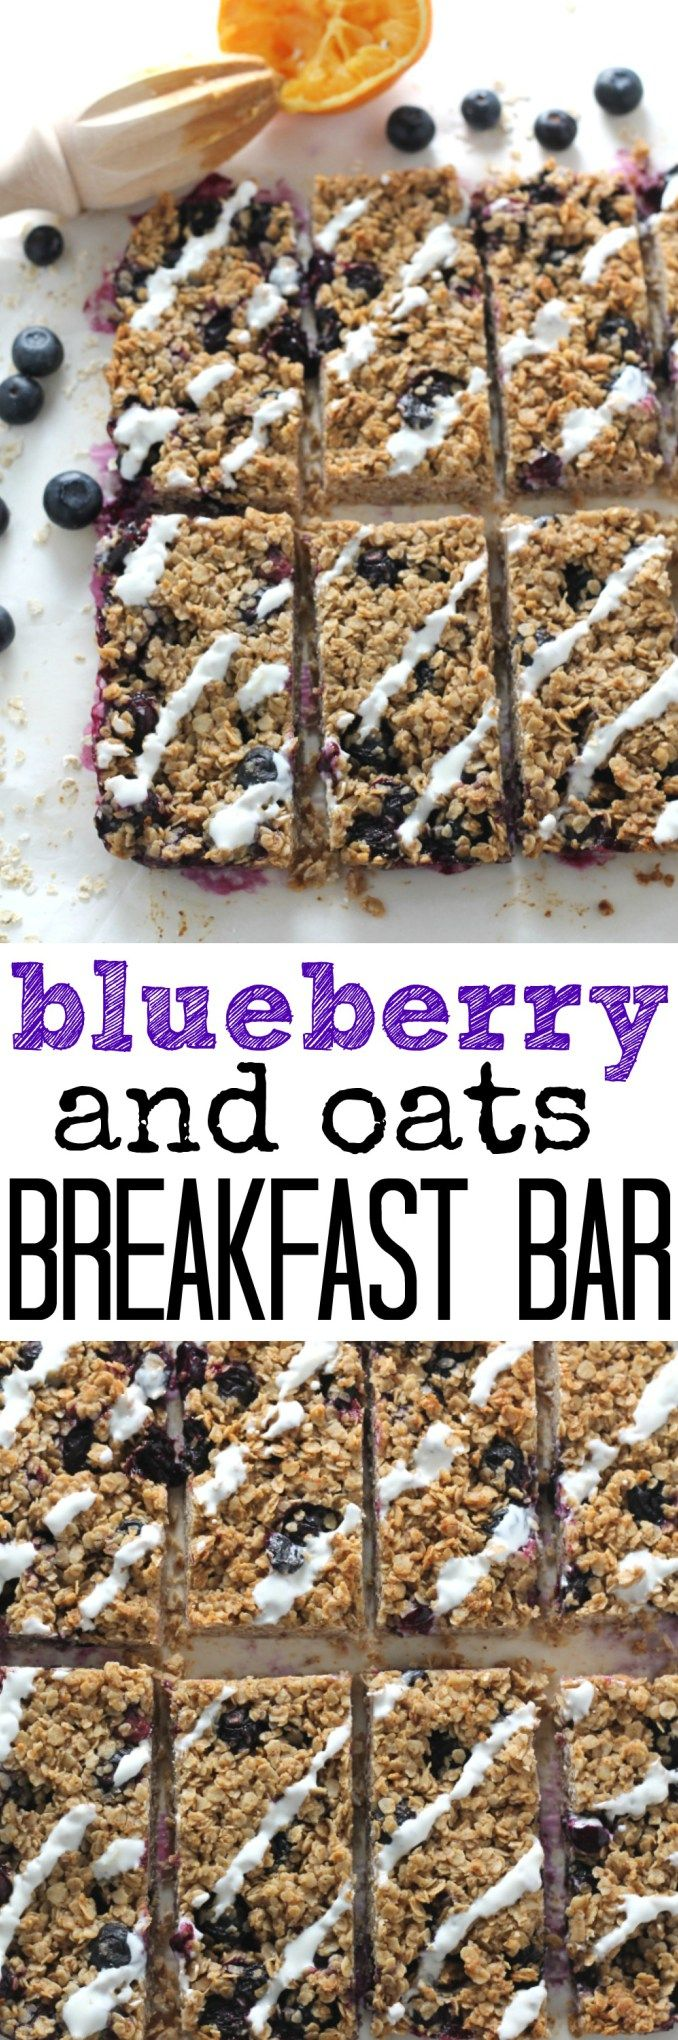 These freezable oat breakfast bars are packed with brain boosting blueberries and are super easy to make. A great grab and go breakfast for kids!